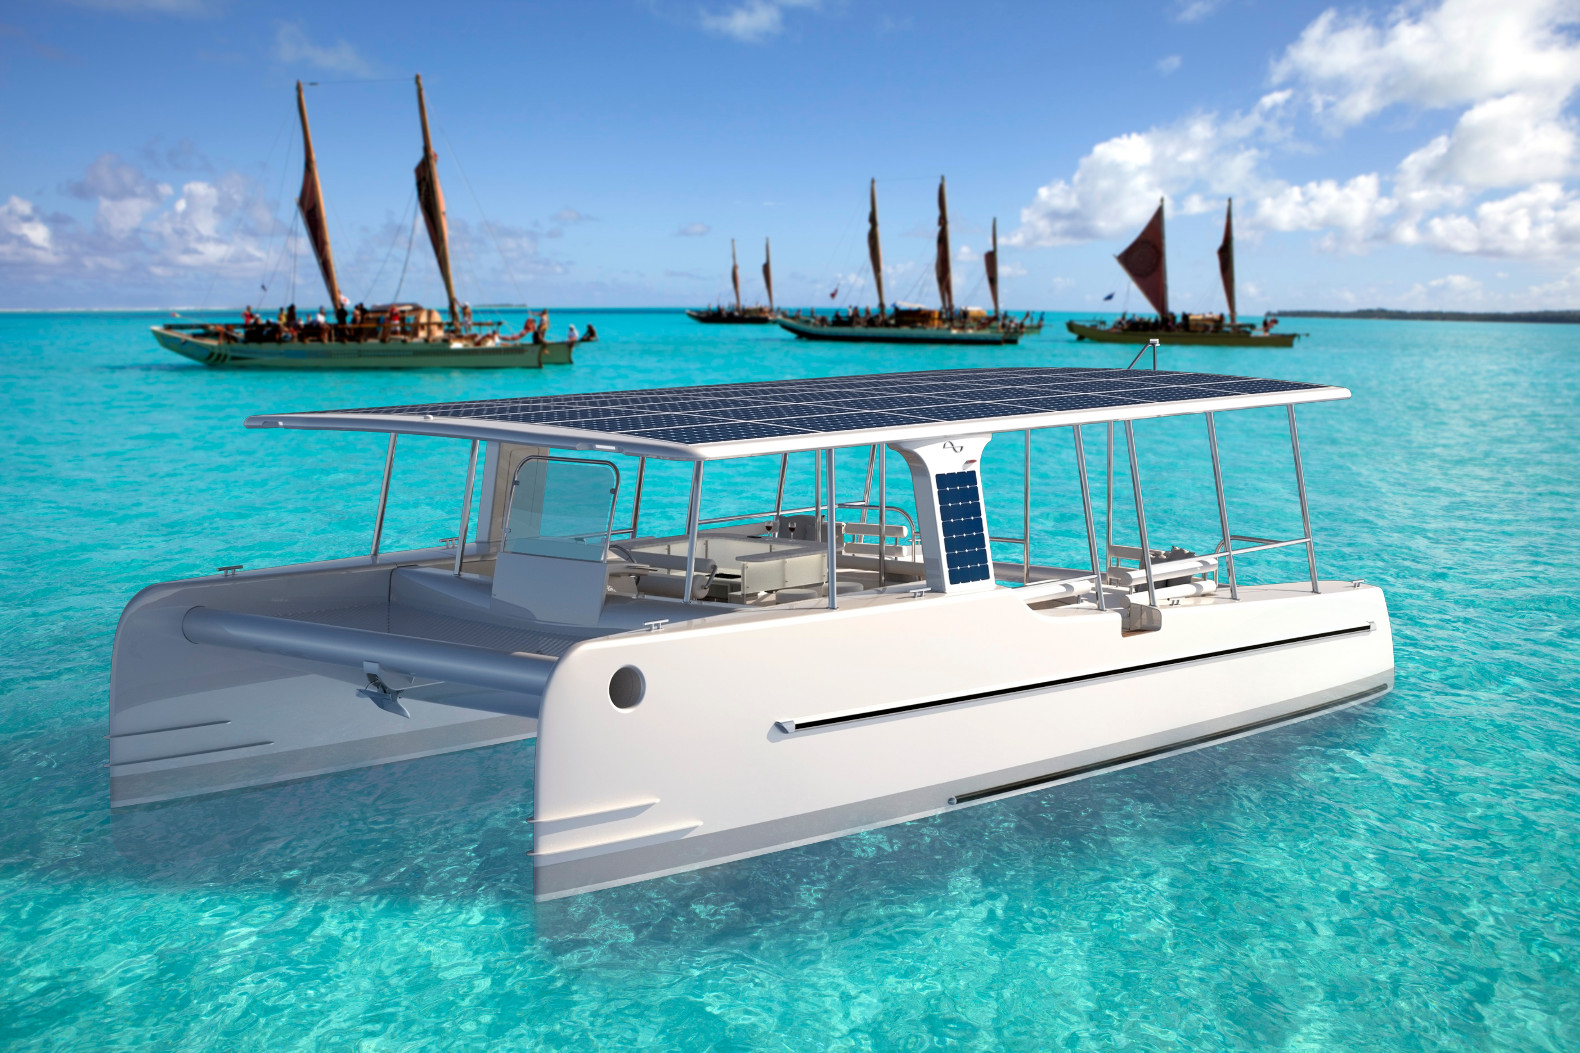 Six Sun Powered Ships Solar Bullet Train Educational Diy Kit For The Soelcat 12 A 39 Foot Catamaran Built From Lightweight Resilient Materials And By Electricity Generated On Board 809 Panels